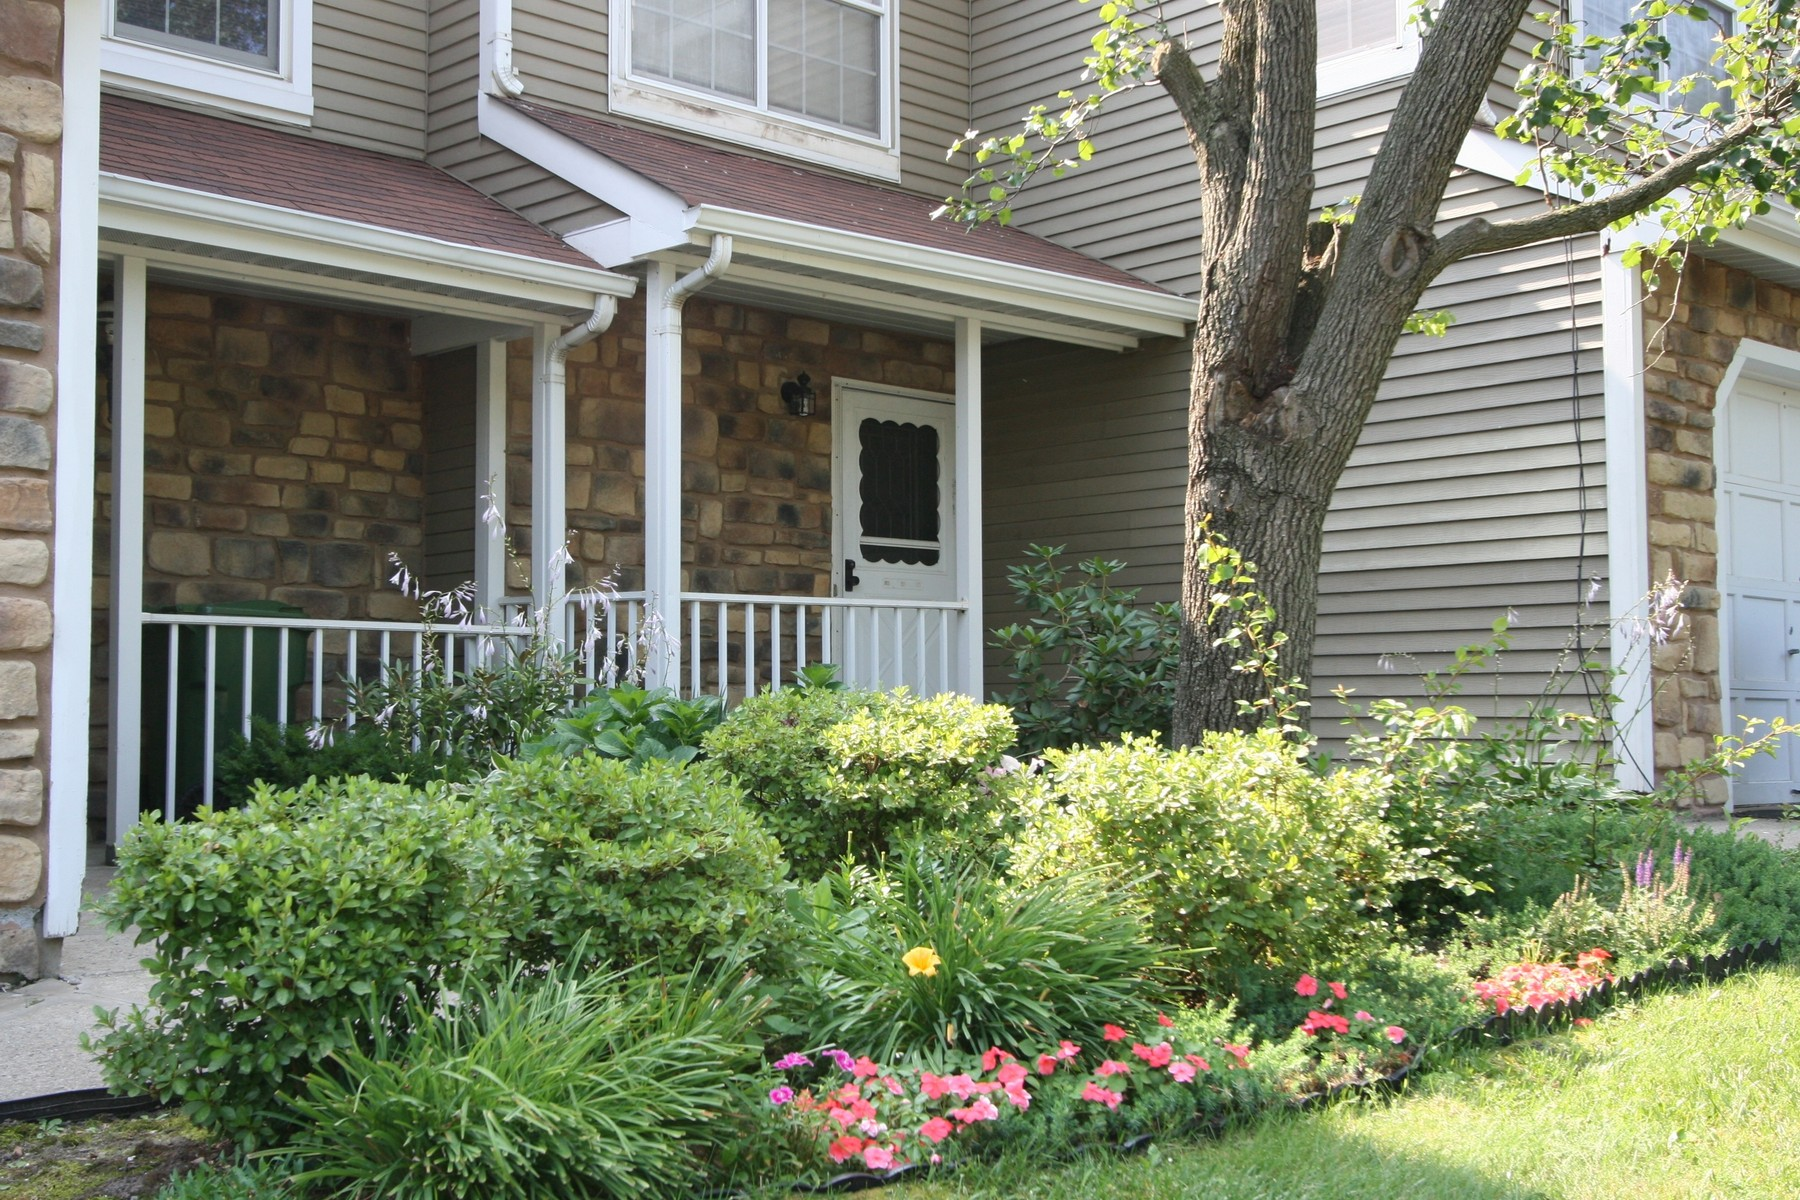 Townhouse for Sale at Fox Chase 19 Saddle Court Tinton Falls, New Jersey 07753 United States